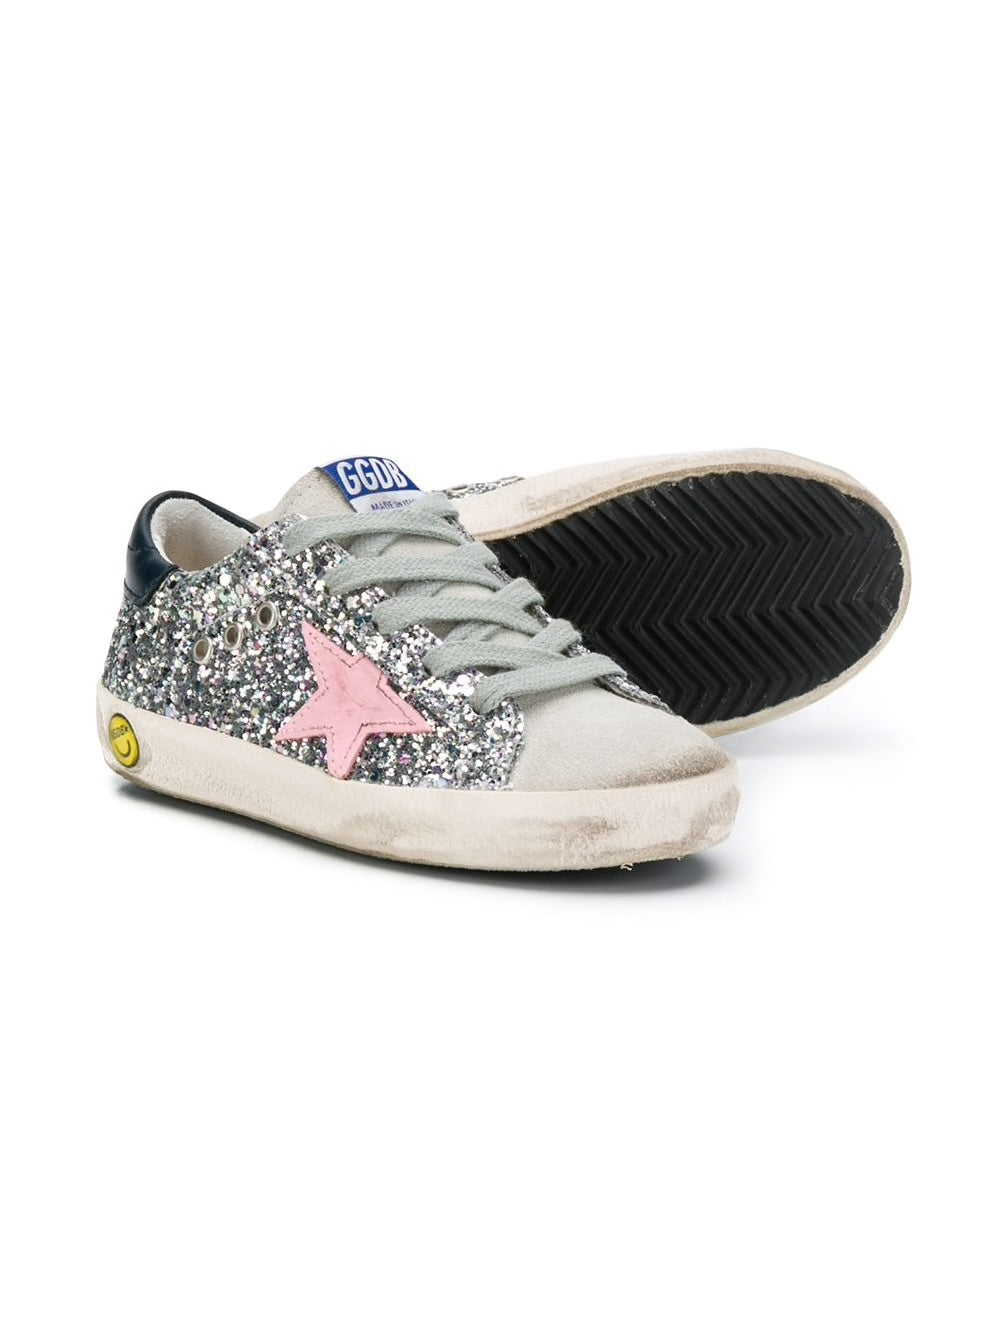 Kid's Superstar Glitter Sneakers Detail